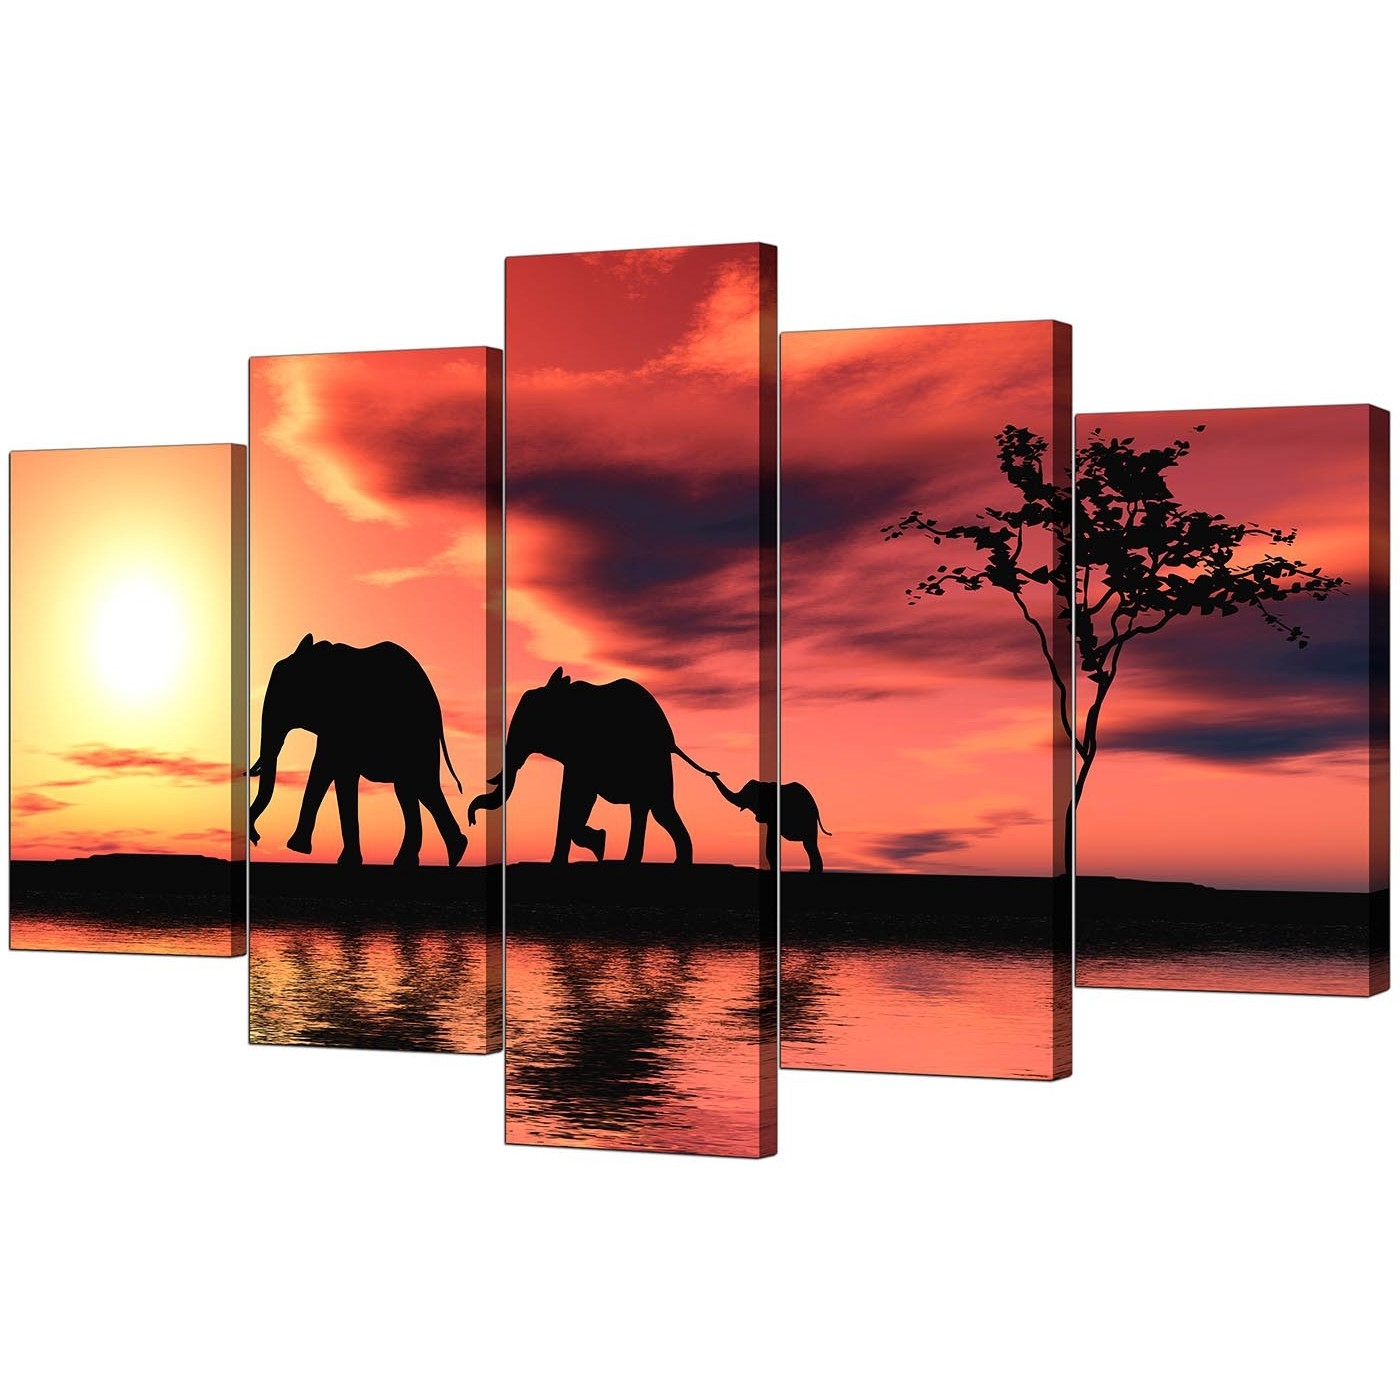 Extra Large Elephants Canvas Prints 5 Piece In Orange In Trendy Elephant Canvas Wall Art (Gallery 9 of 15)